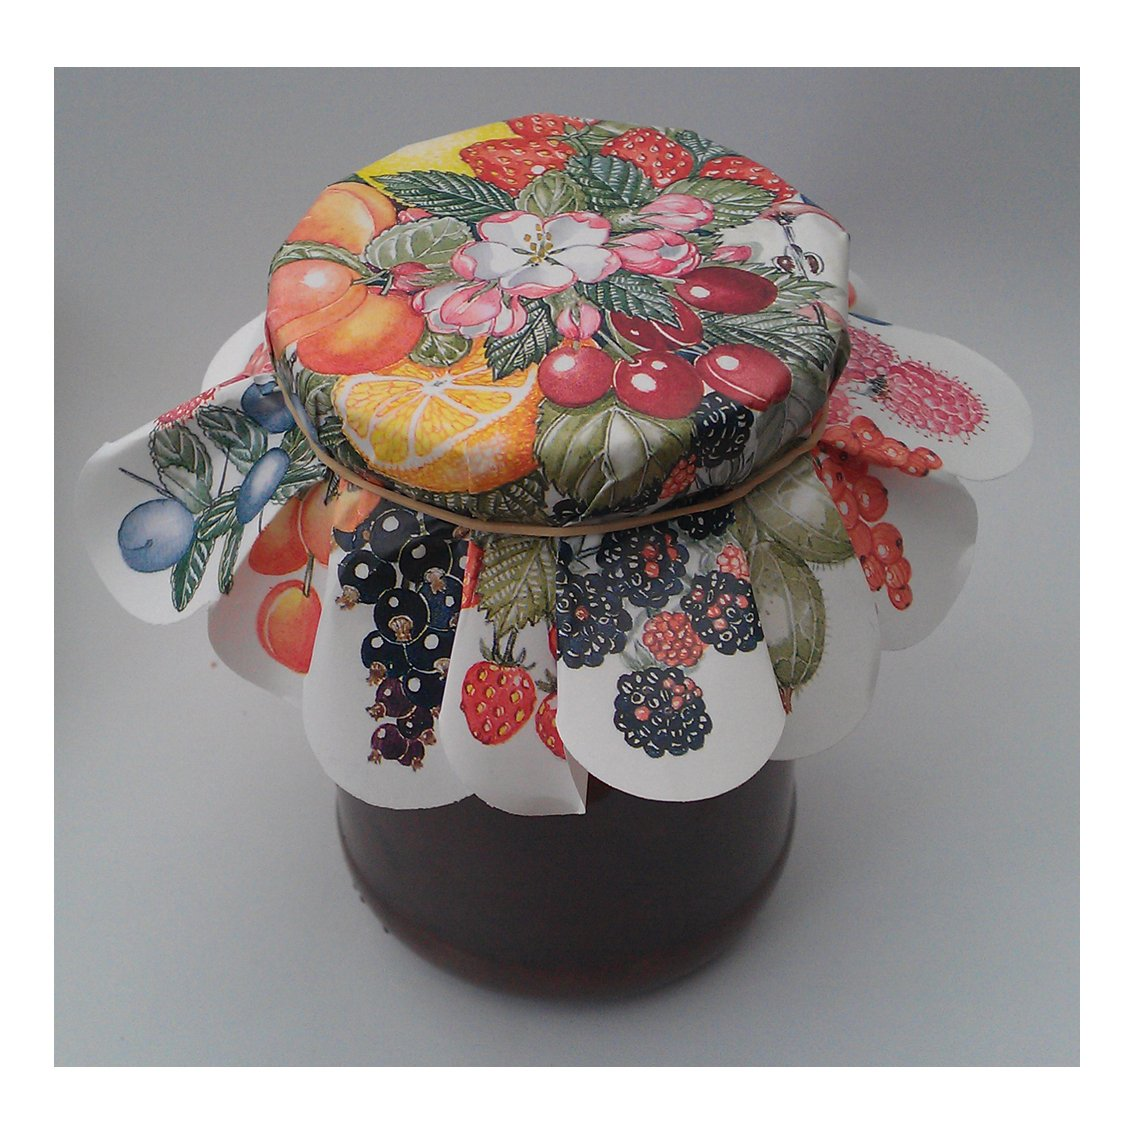 Paper Jar Covers for Jams & Preserves packet of 50 covers Countryside-Direct